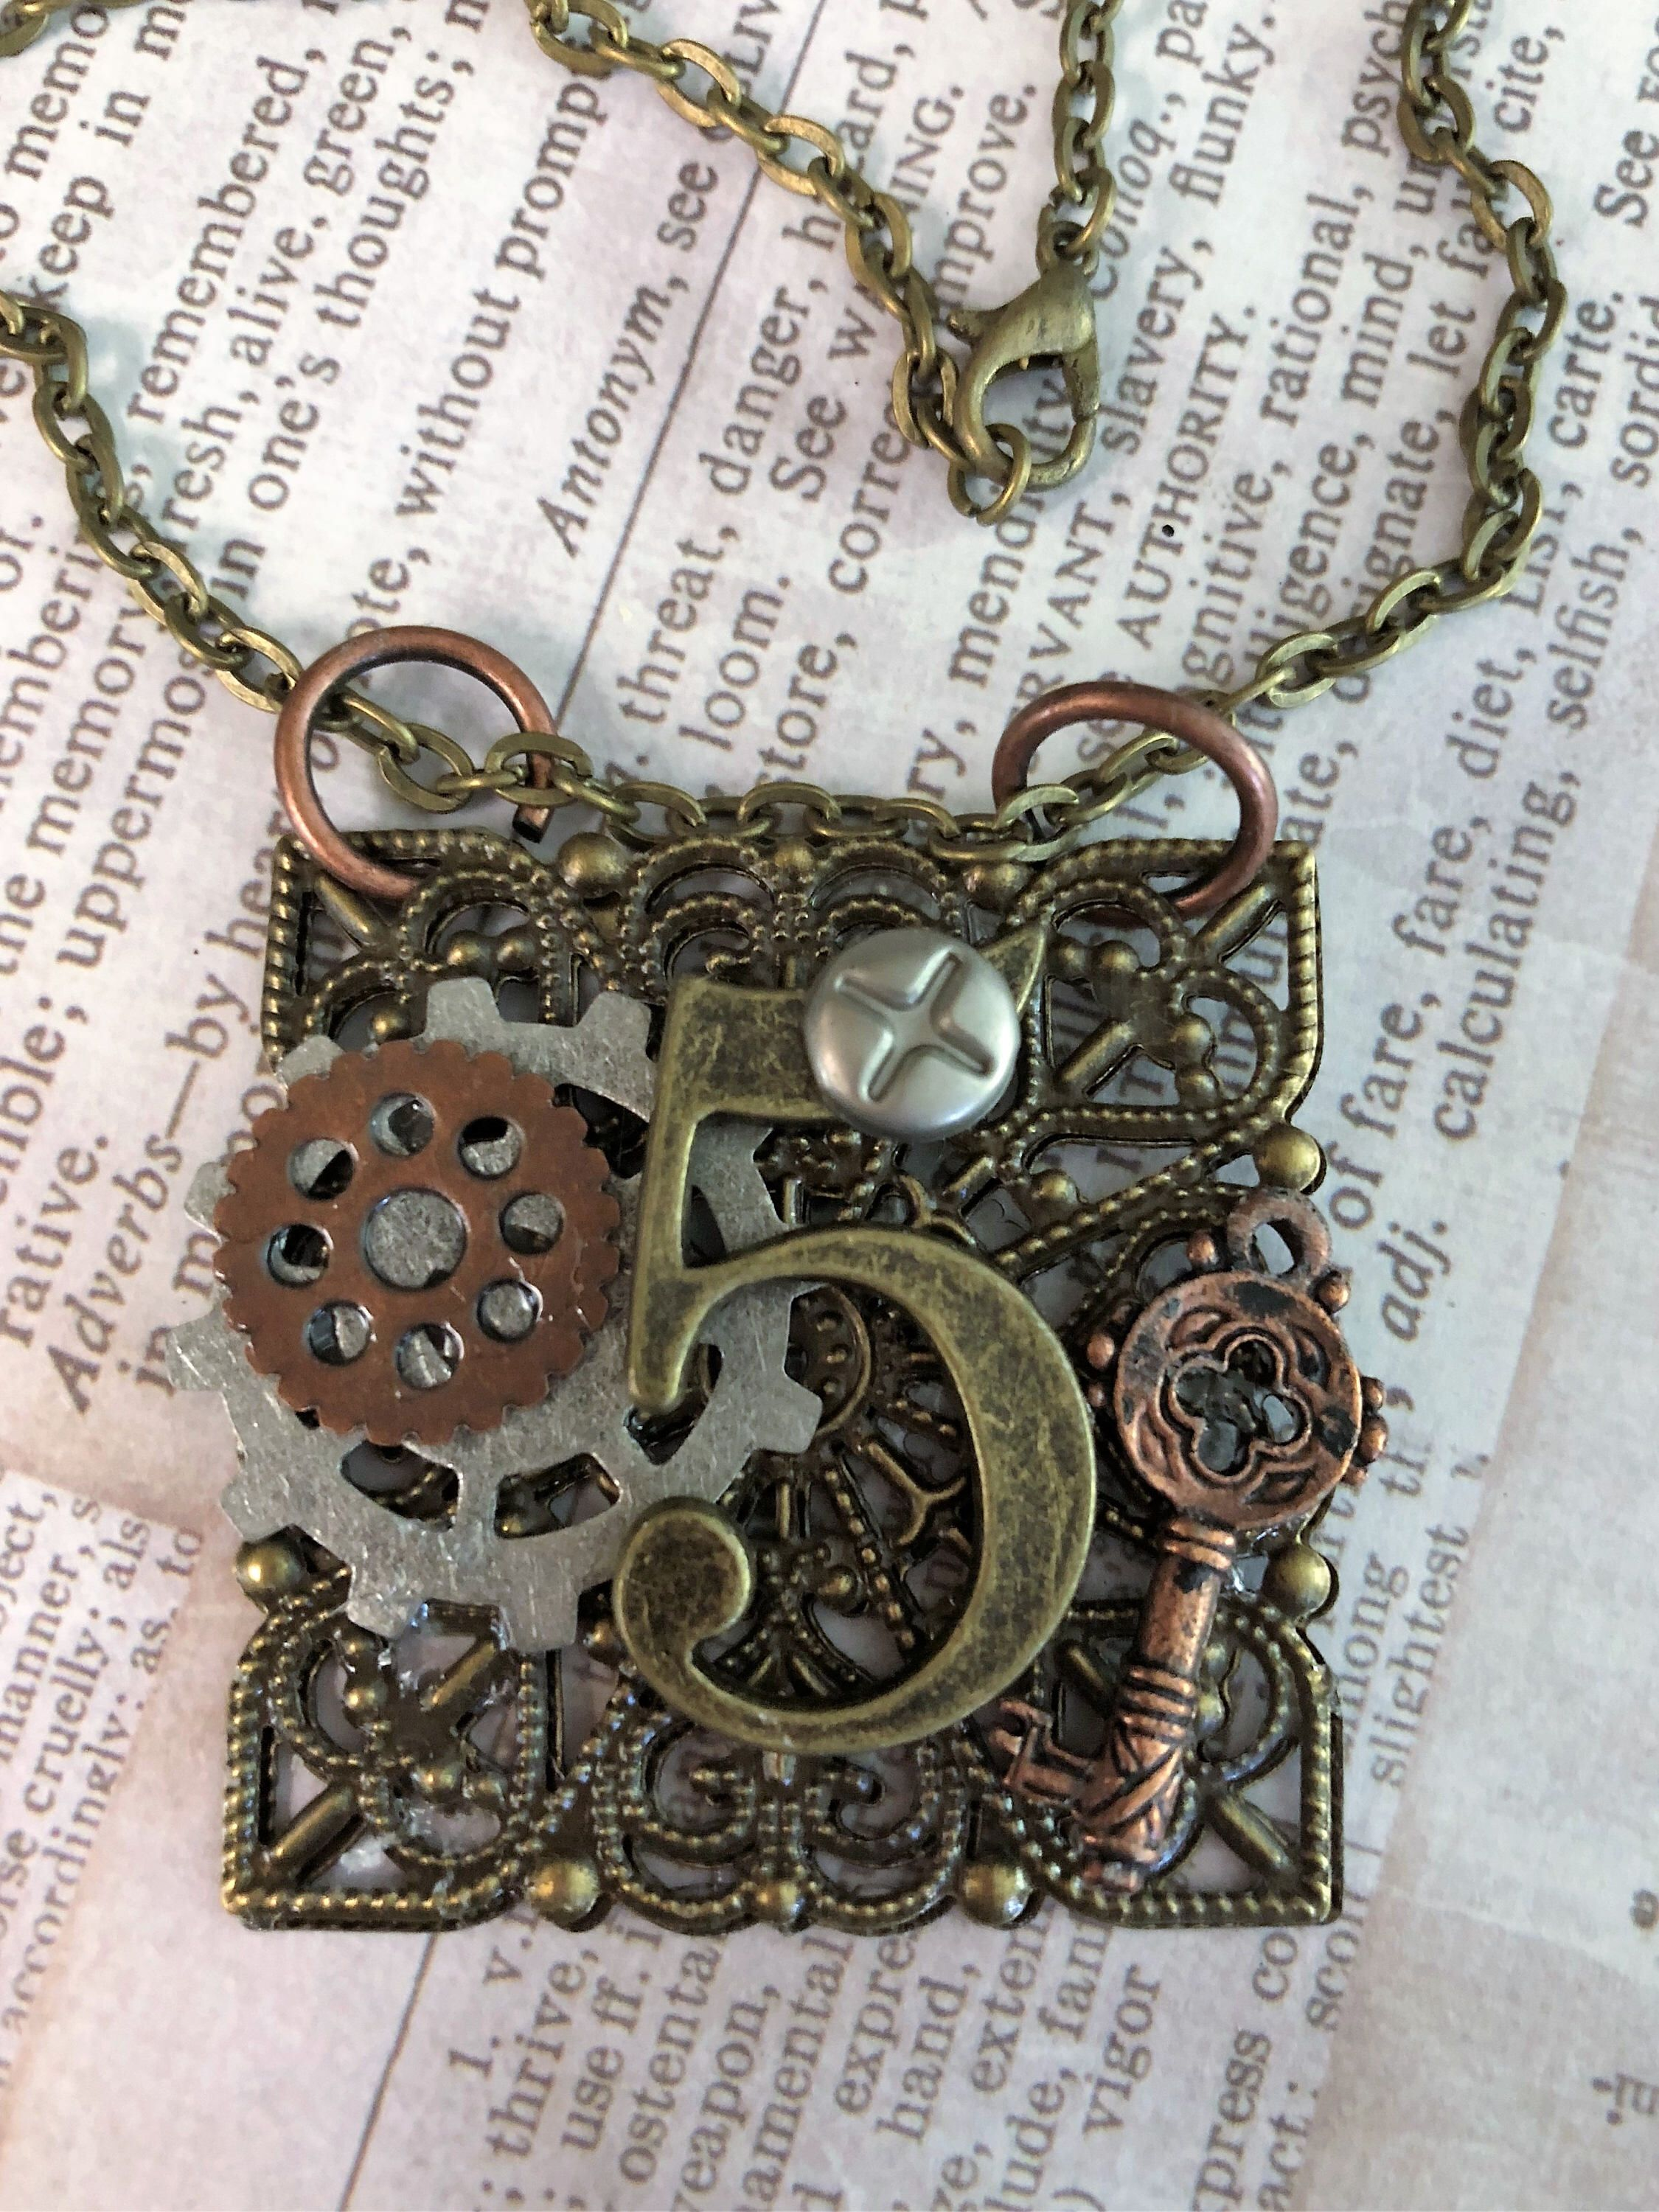 Steampunk Costumes Steampunk Necklace Mixed Metal Unisex Etsy Steampunk Jewelry Diy Key Crafts Steampunk Christmas